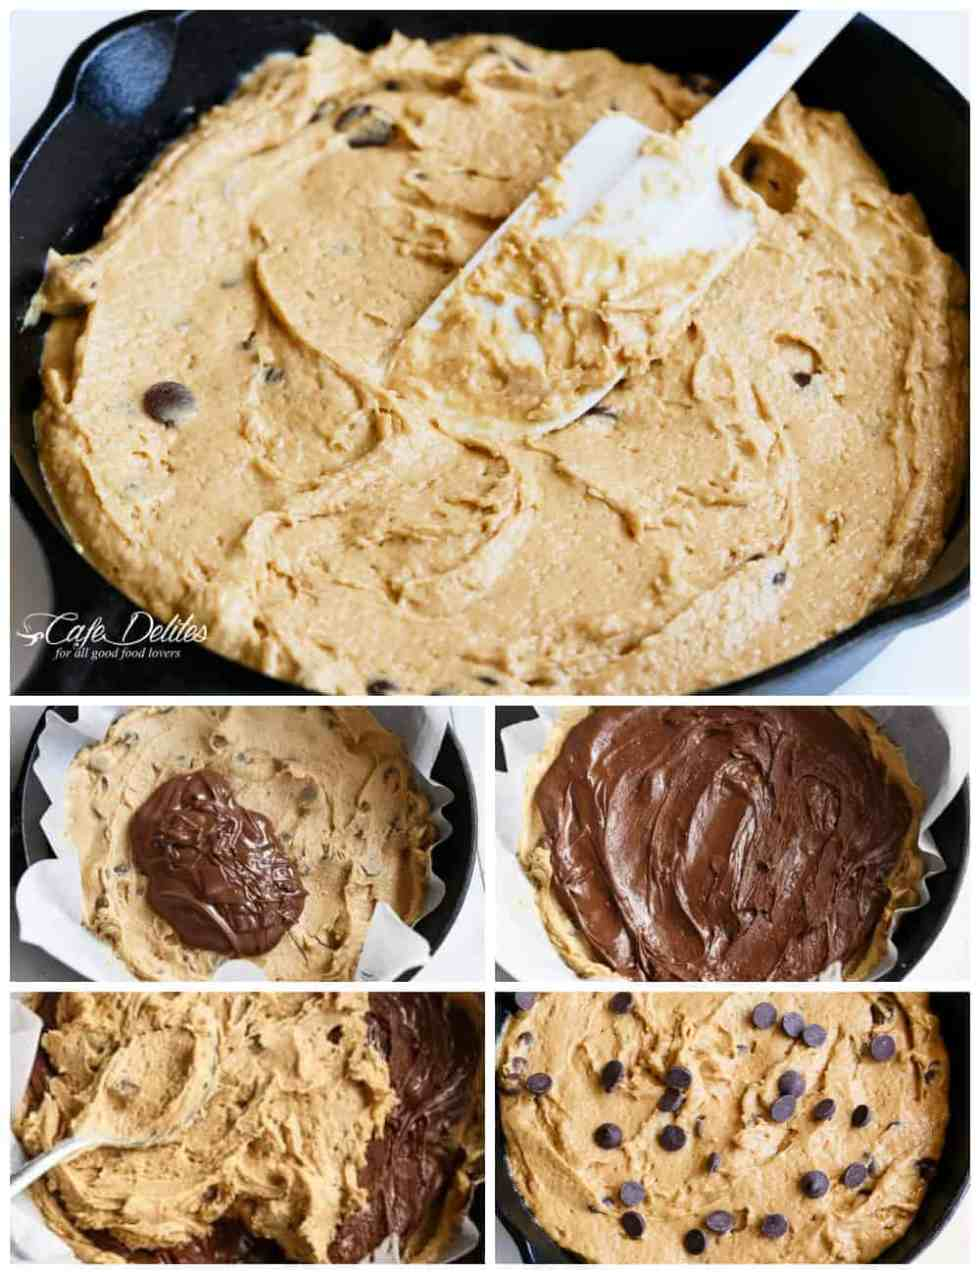 How To Make A Nutella Stuffed Skillet Cookie | cafedelites.com